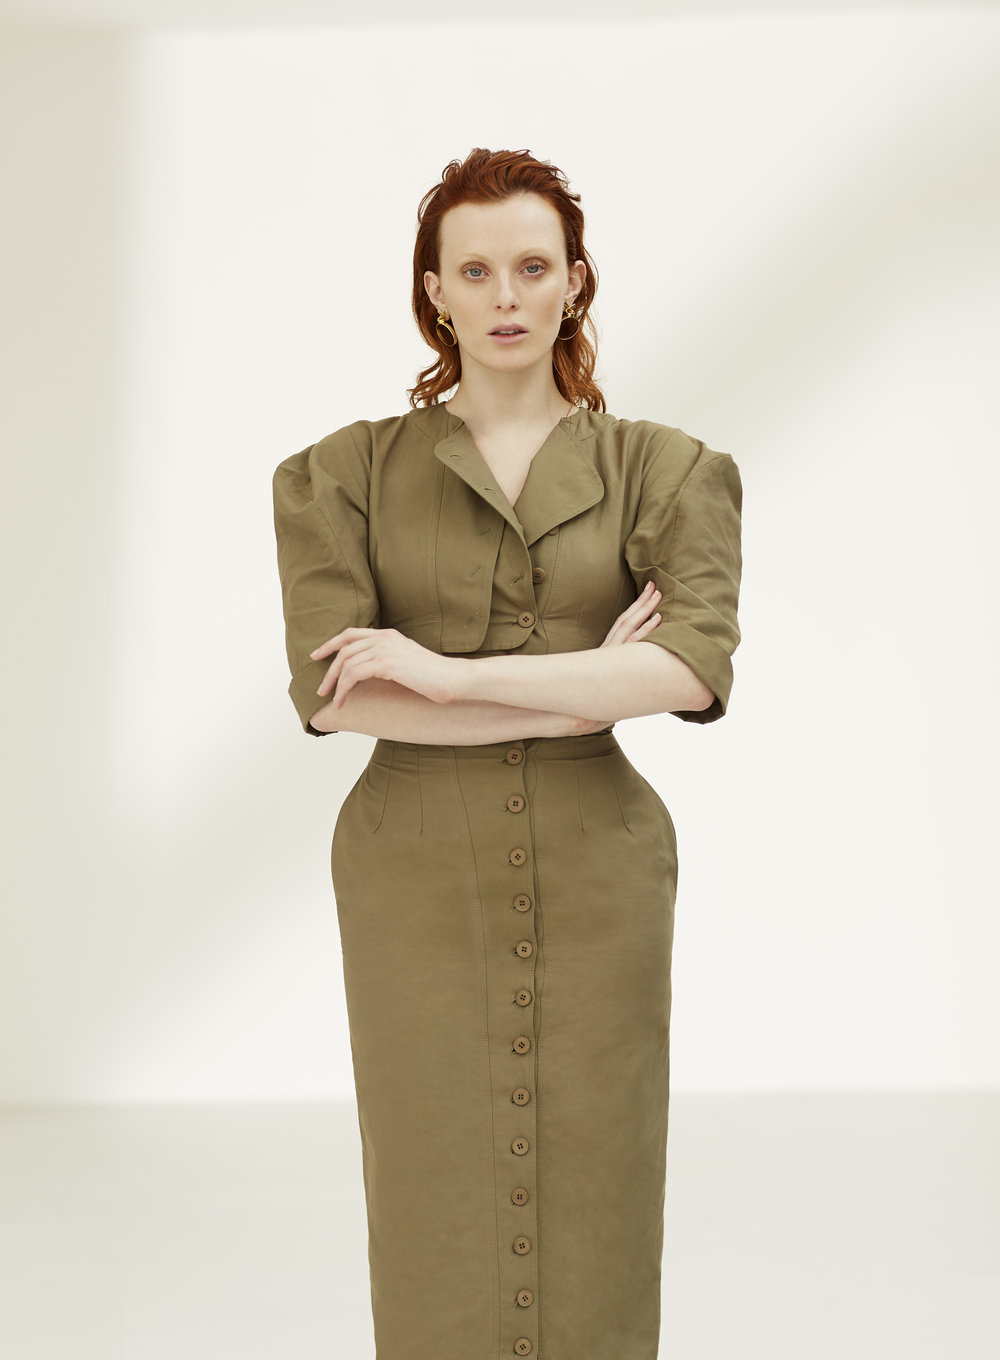 FF-Karen Elson Studio March17_01_076 (1).jpg